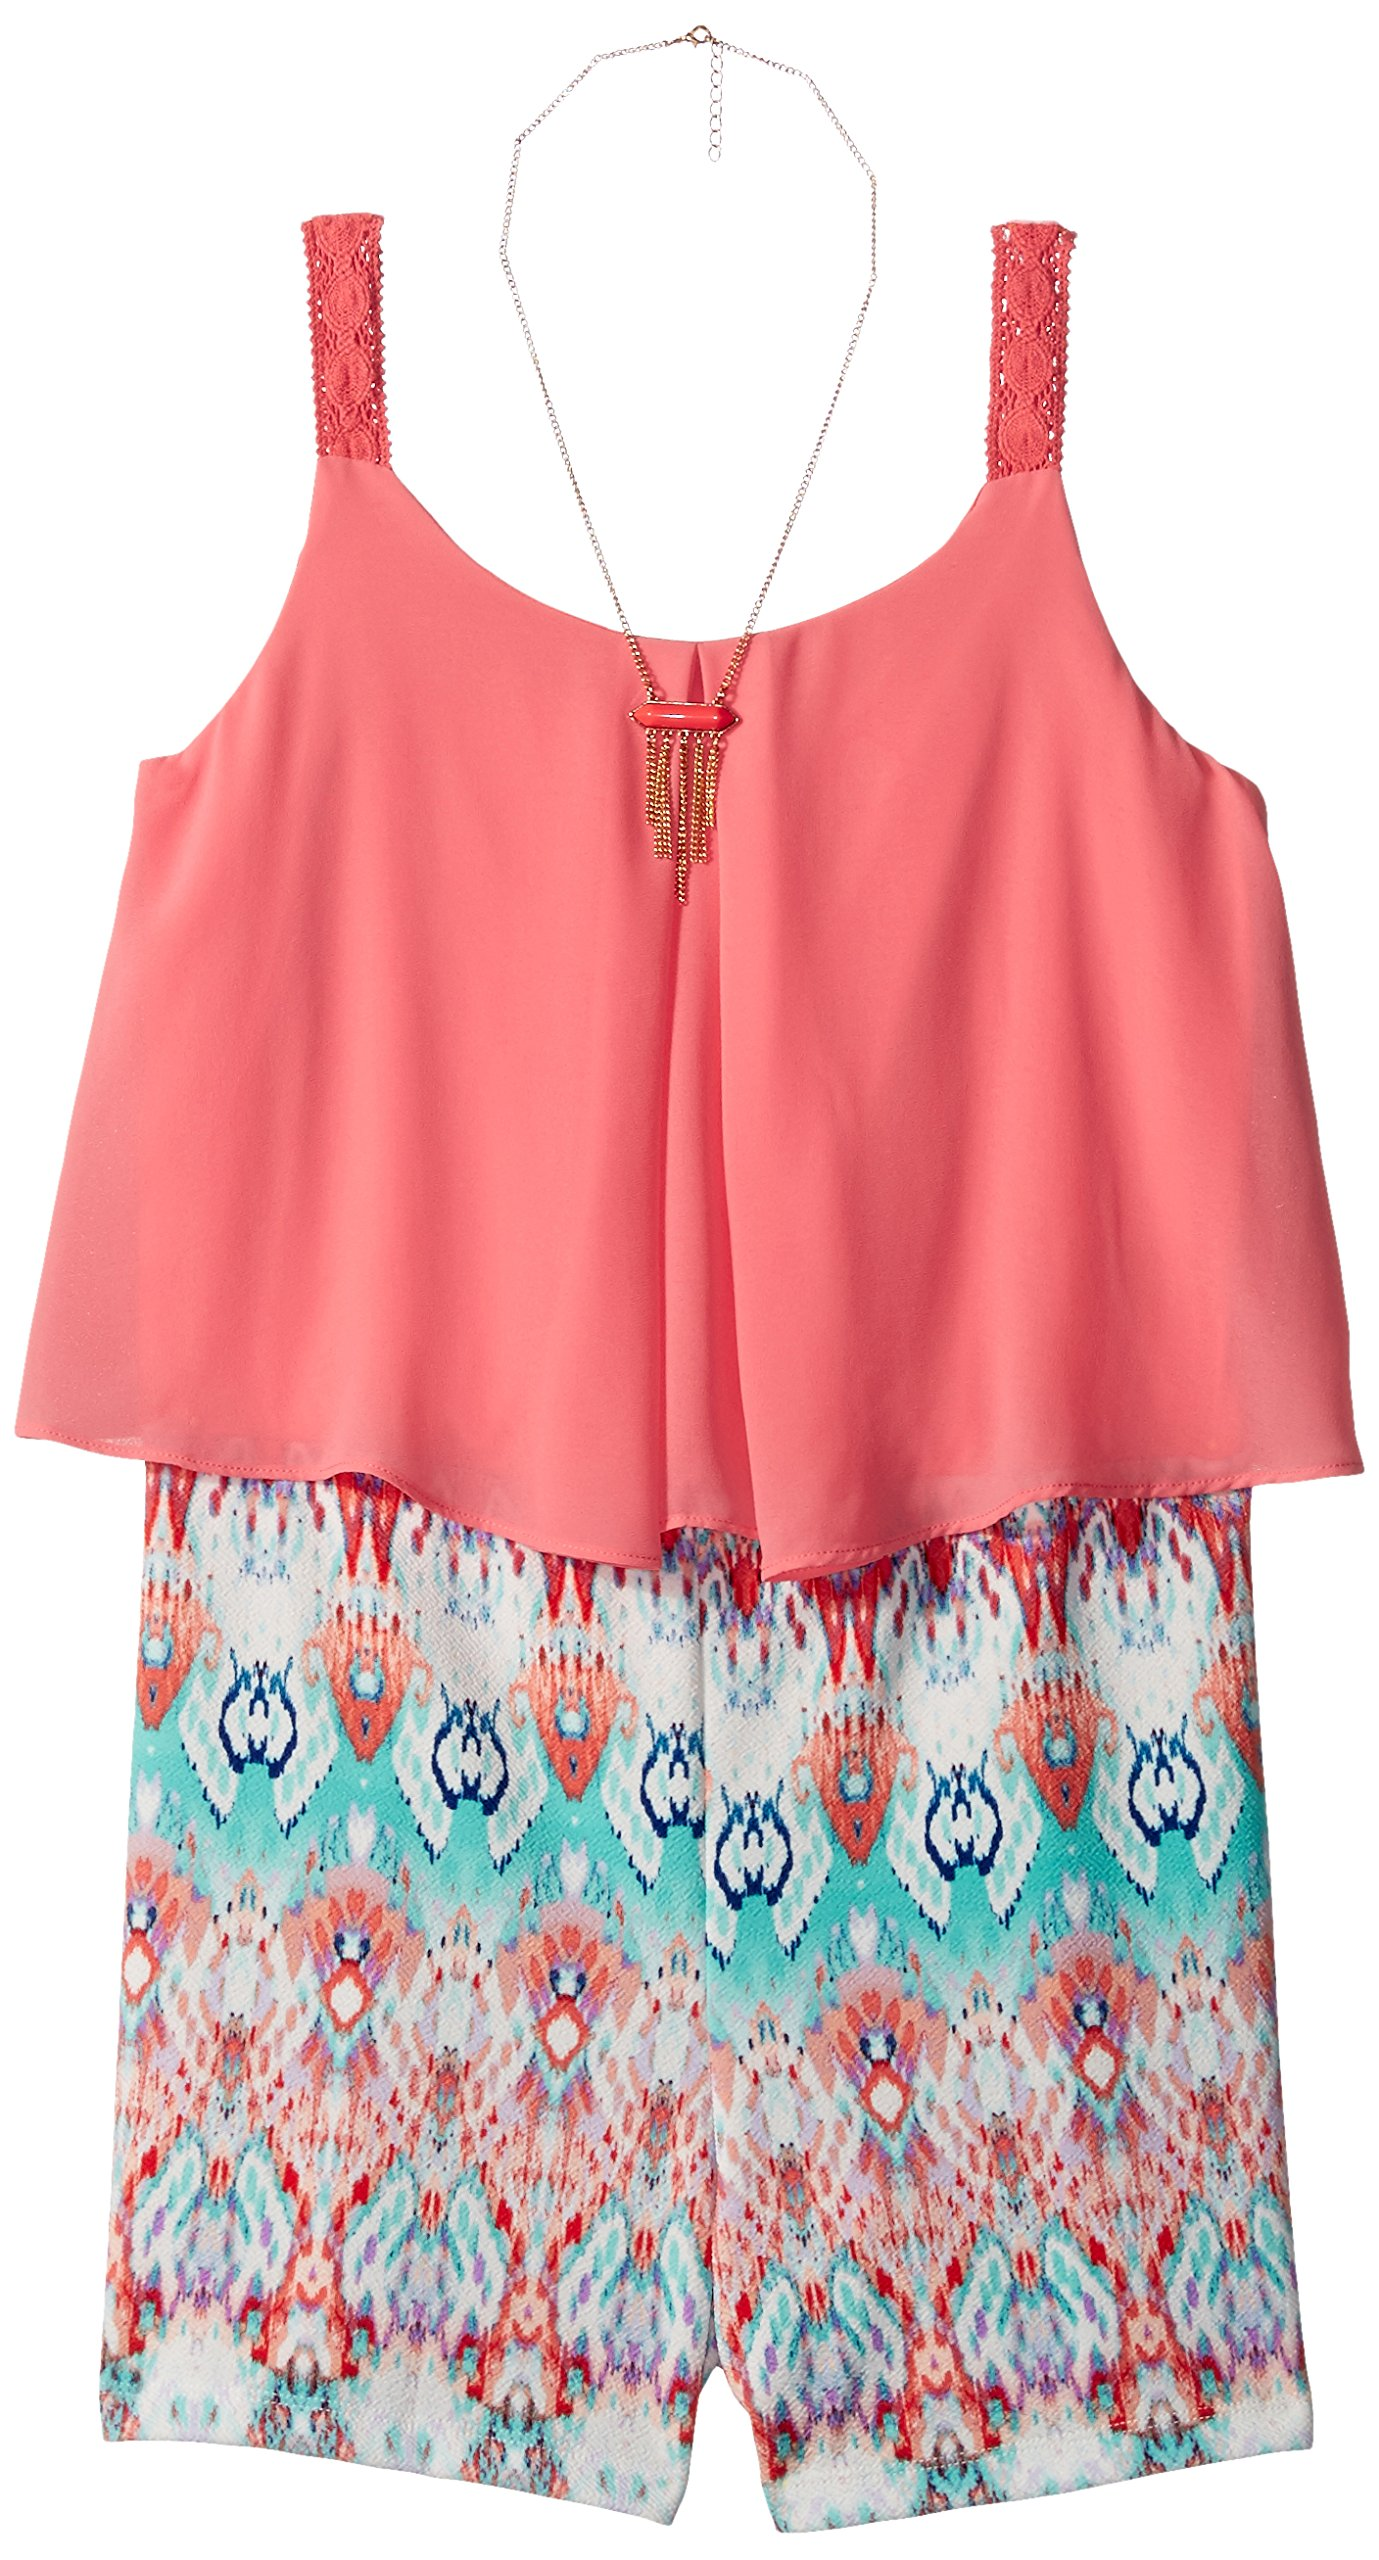 Amy Byer Big Girls' Popover Tank with Print Short, Color Coral, L